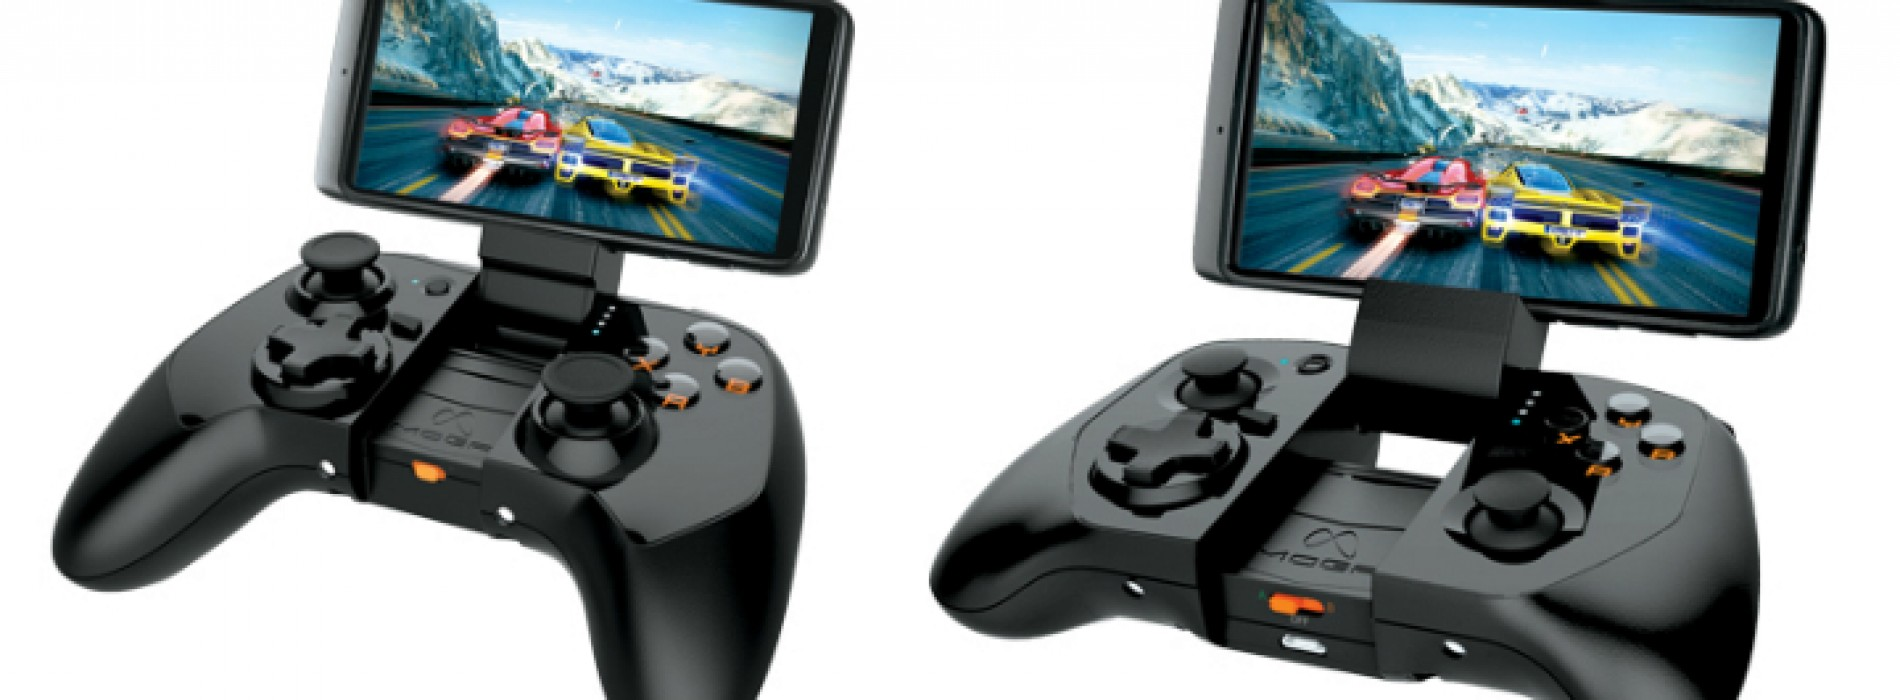 PowerA intros a pair of new MOGA gaming controllers for Android